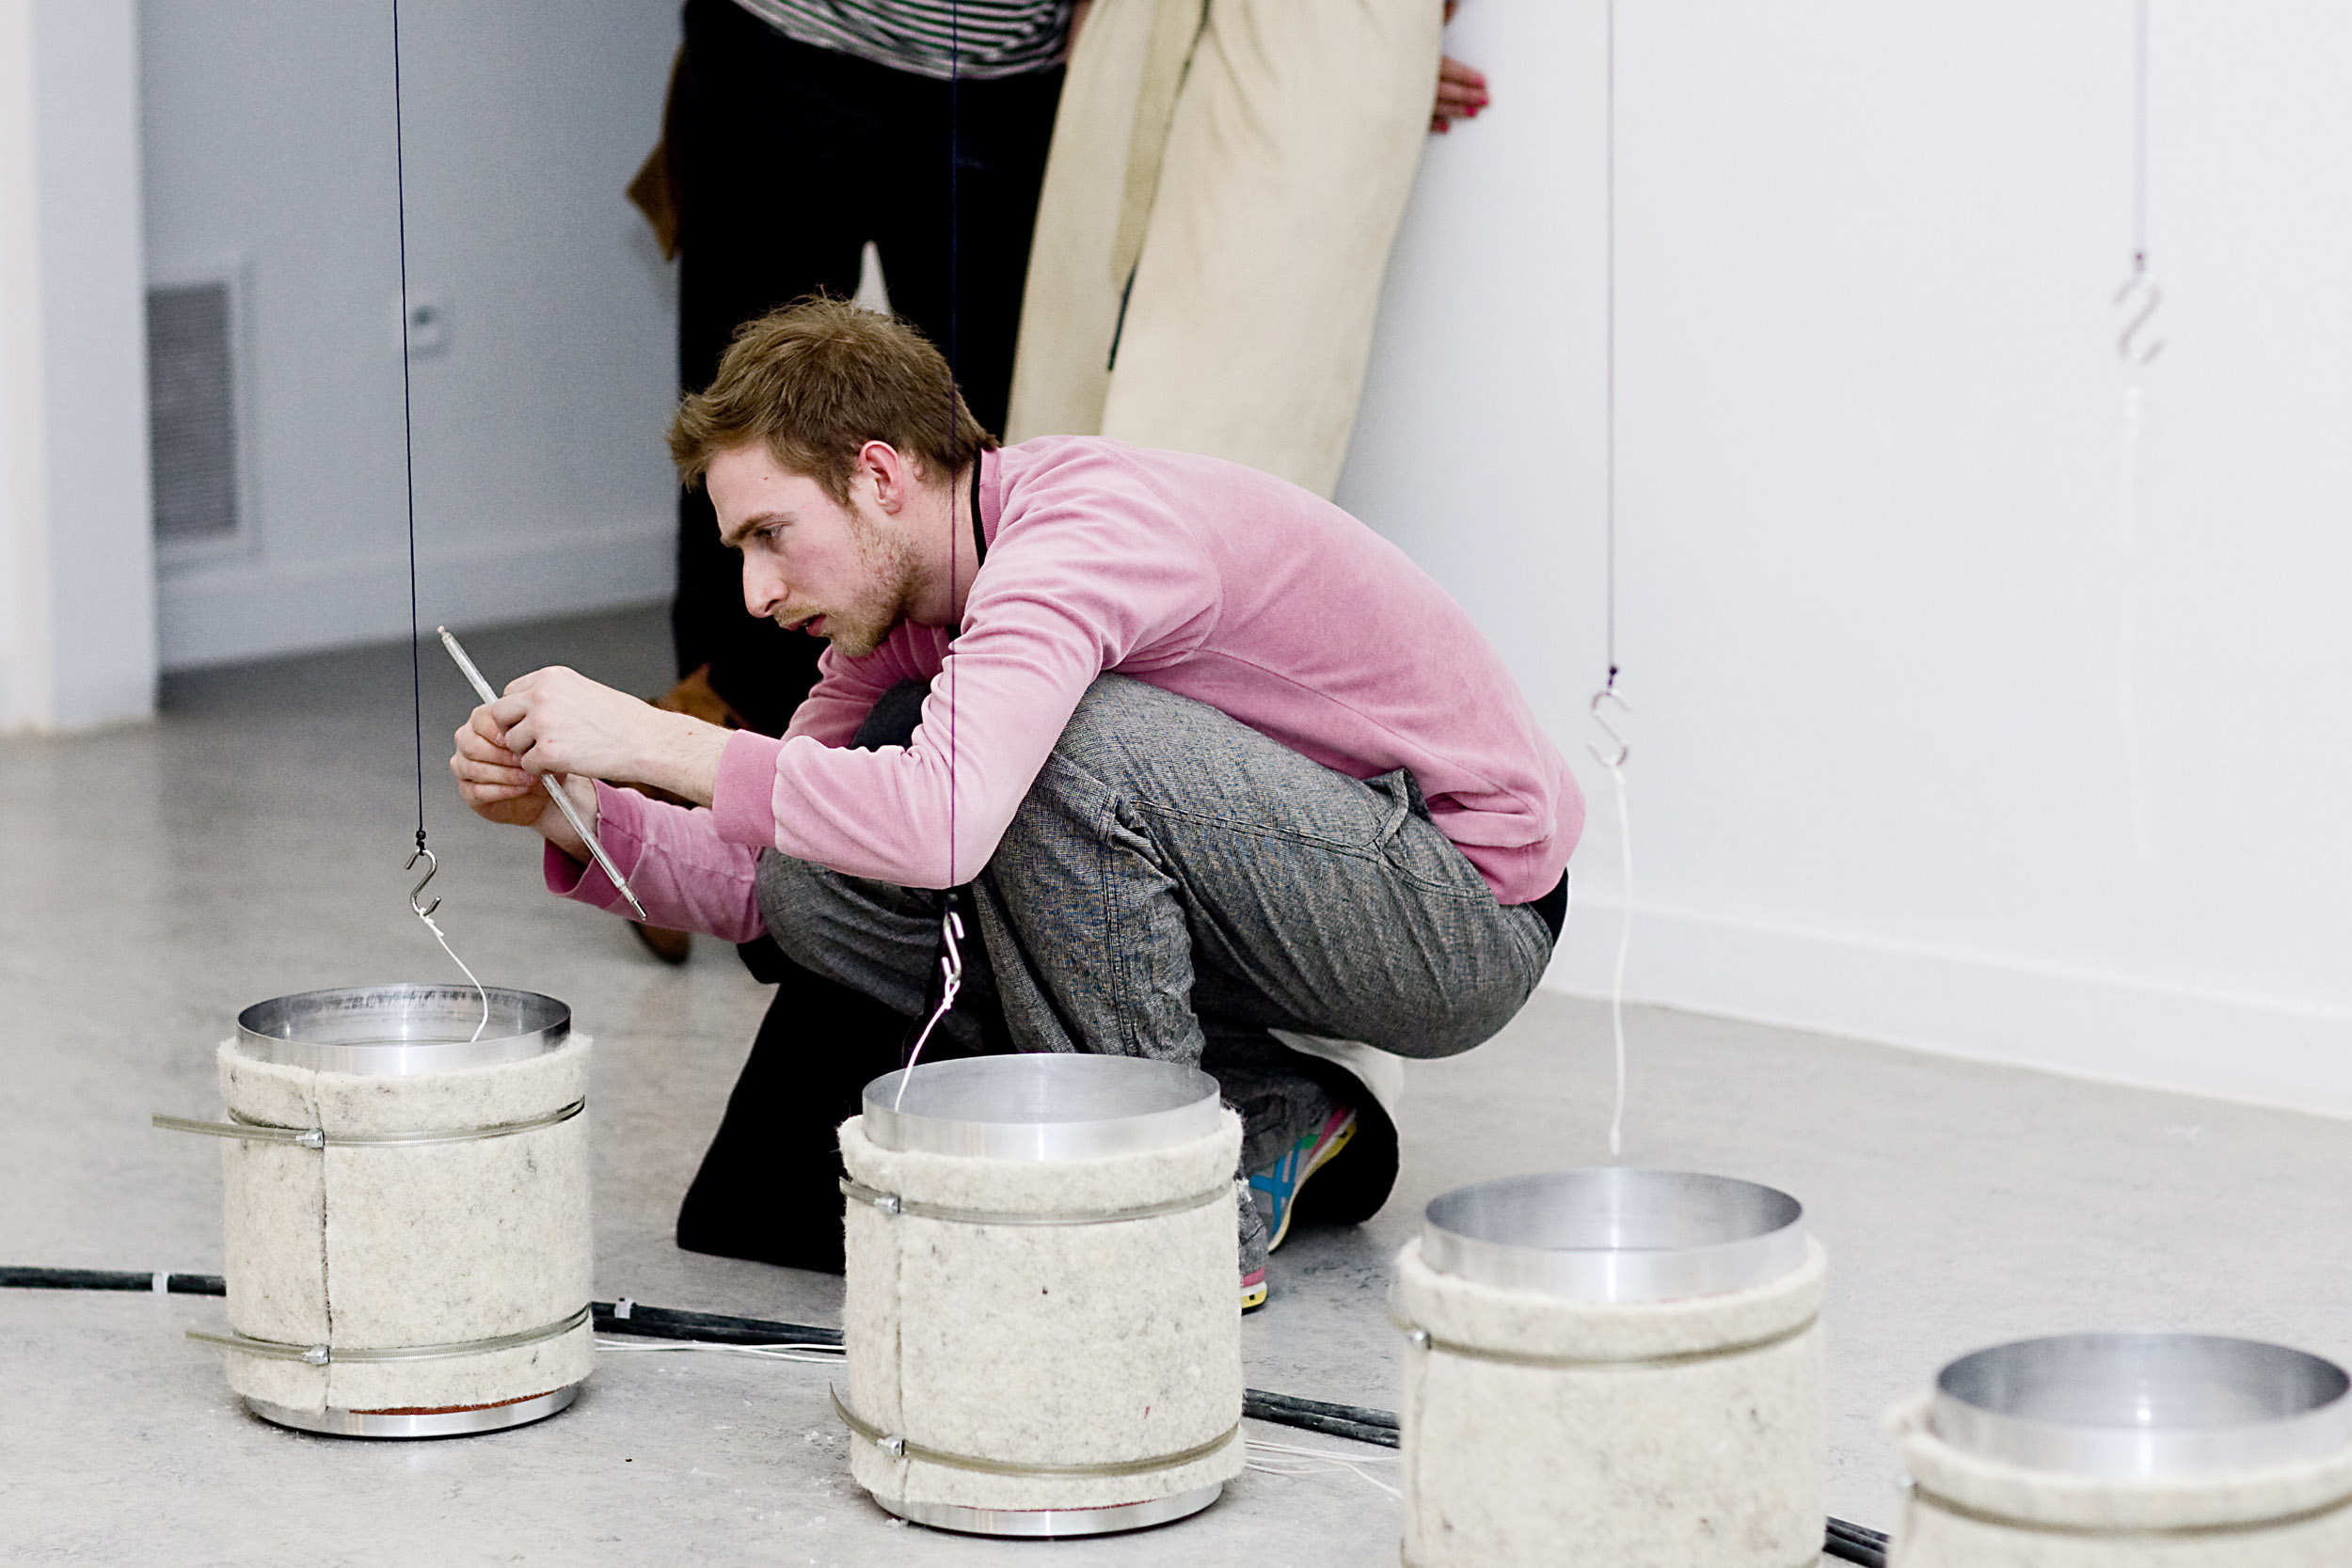 Tim fixing candle wick to the end of the dipping lines at Z33 gallery